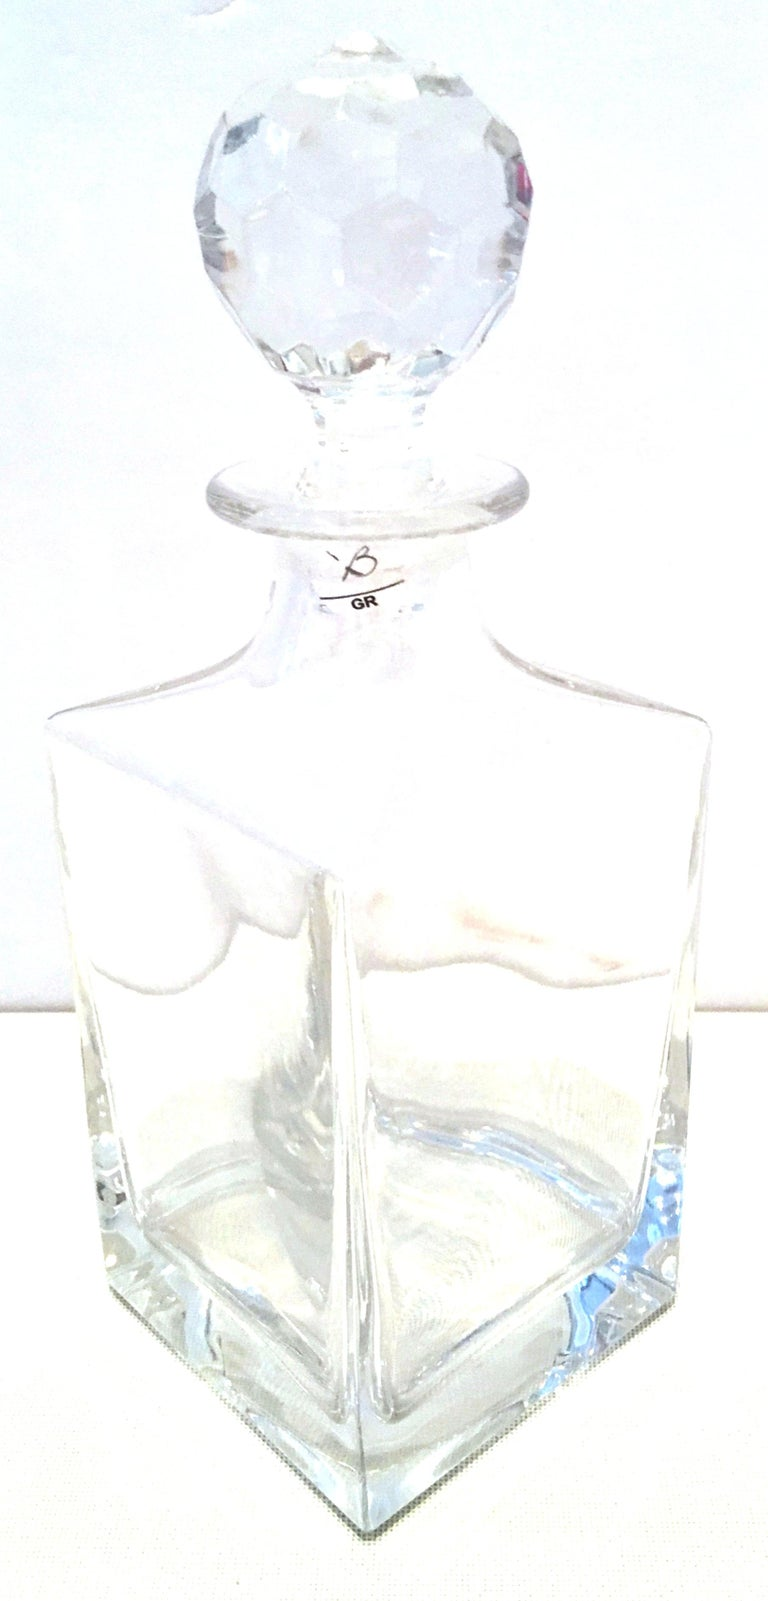 20th Century Tiffany Cut Crystal Liquor Decanter & Stem Drink Glasses, Set of 6 In Good Condition For Sale In West Palm Beach, FL